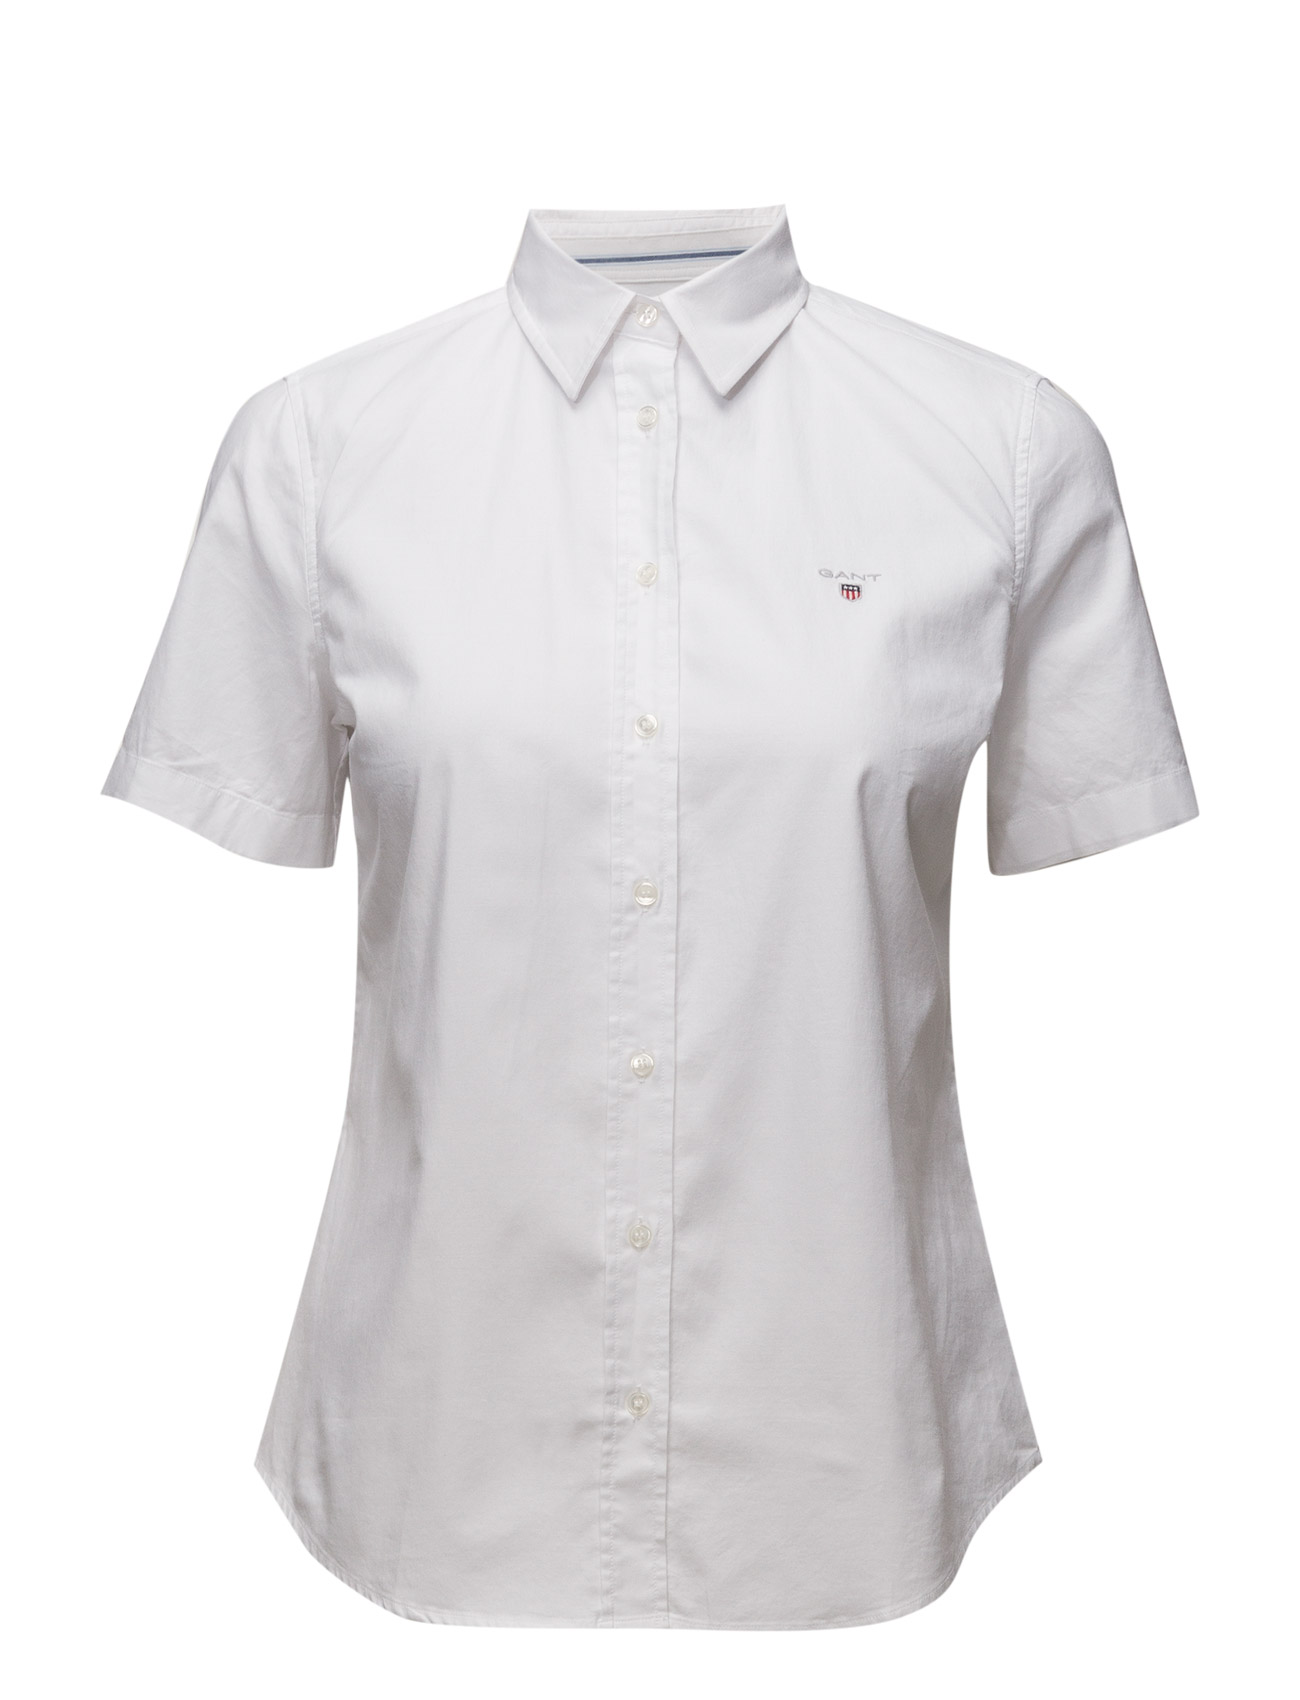 Image of Stretch Oxford Solid Ss Shirt (3117282669)